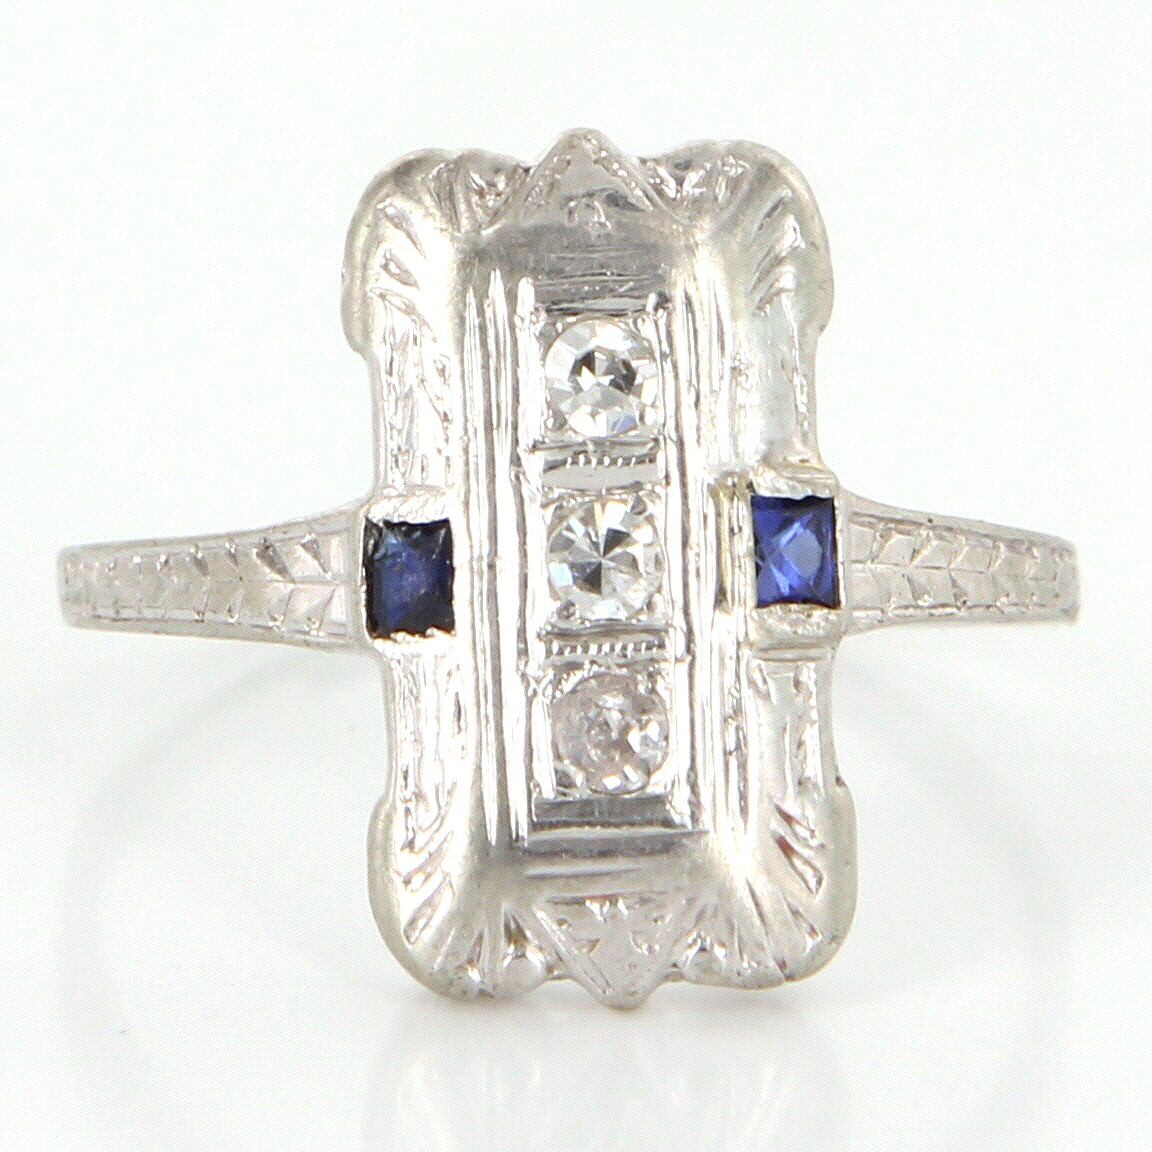 antique deco 18k gold sapphire cocktail ring vintage estate jewelry ebay